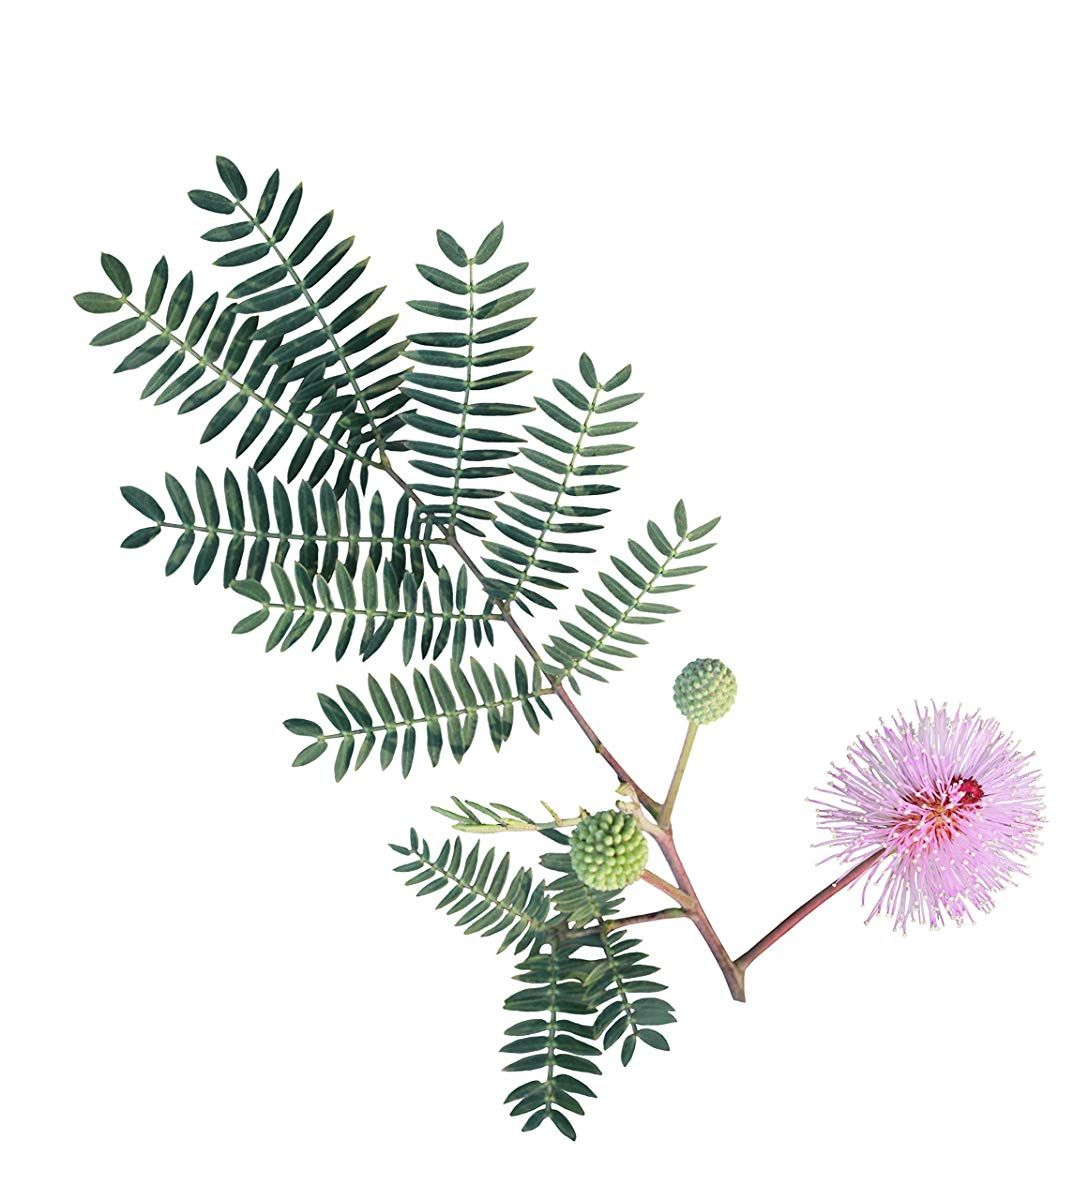 Mimosa tree clipart banner library library Sensitive Plant Seeds | Garden Plants | Plant leaves ... banner library library